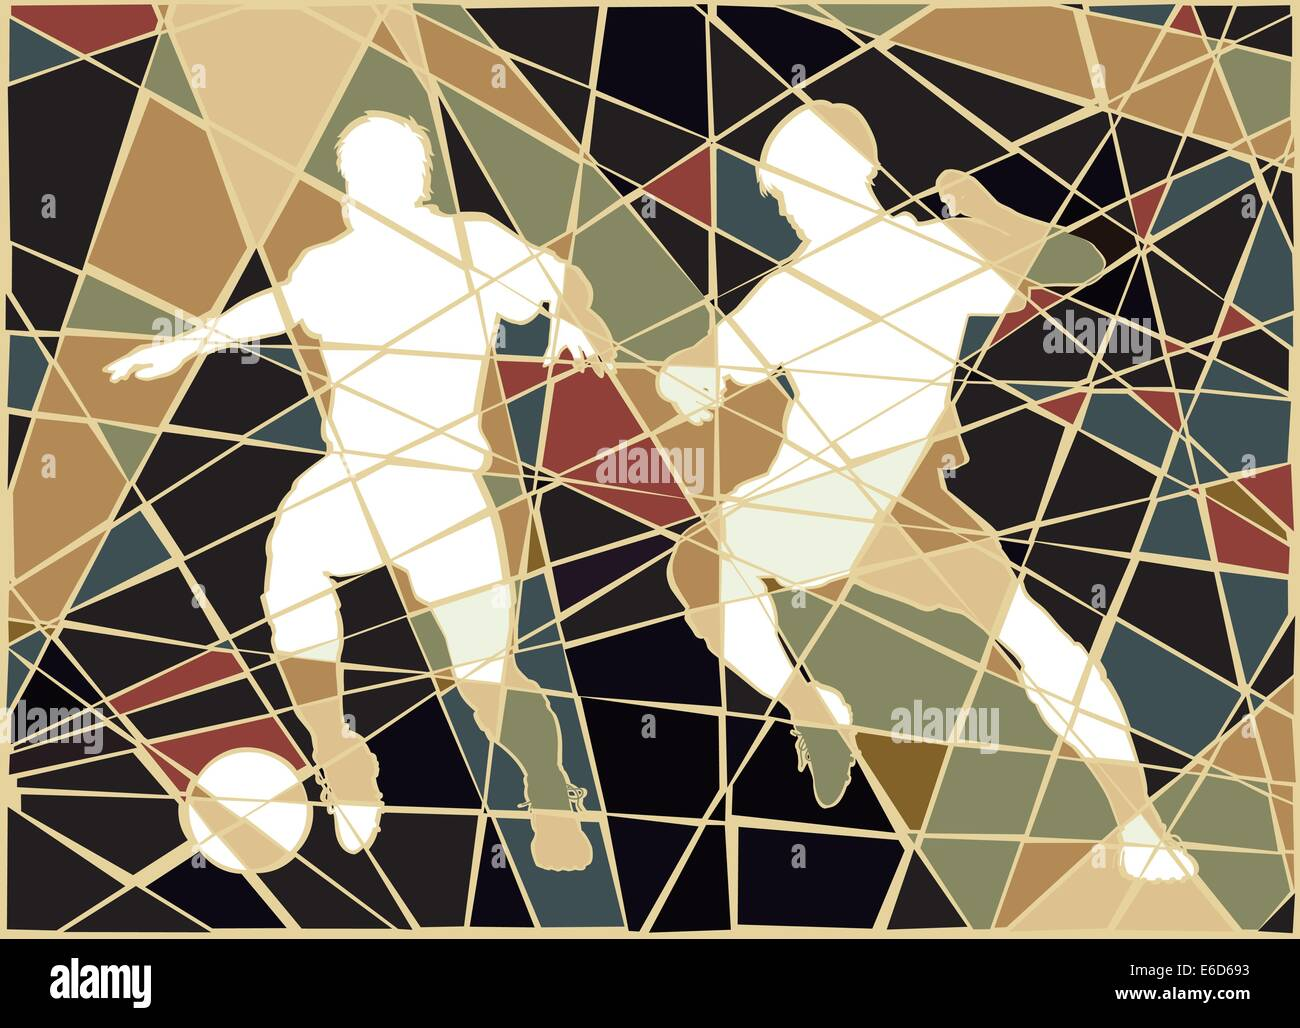 Editable vector colorful mosaic illustration of two men playing football - Stock Vector